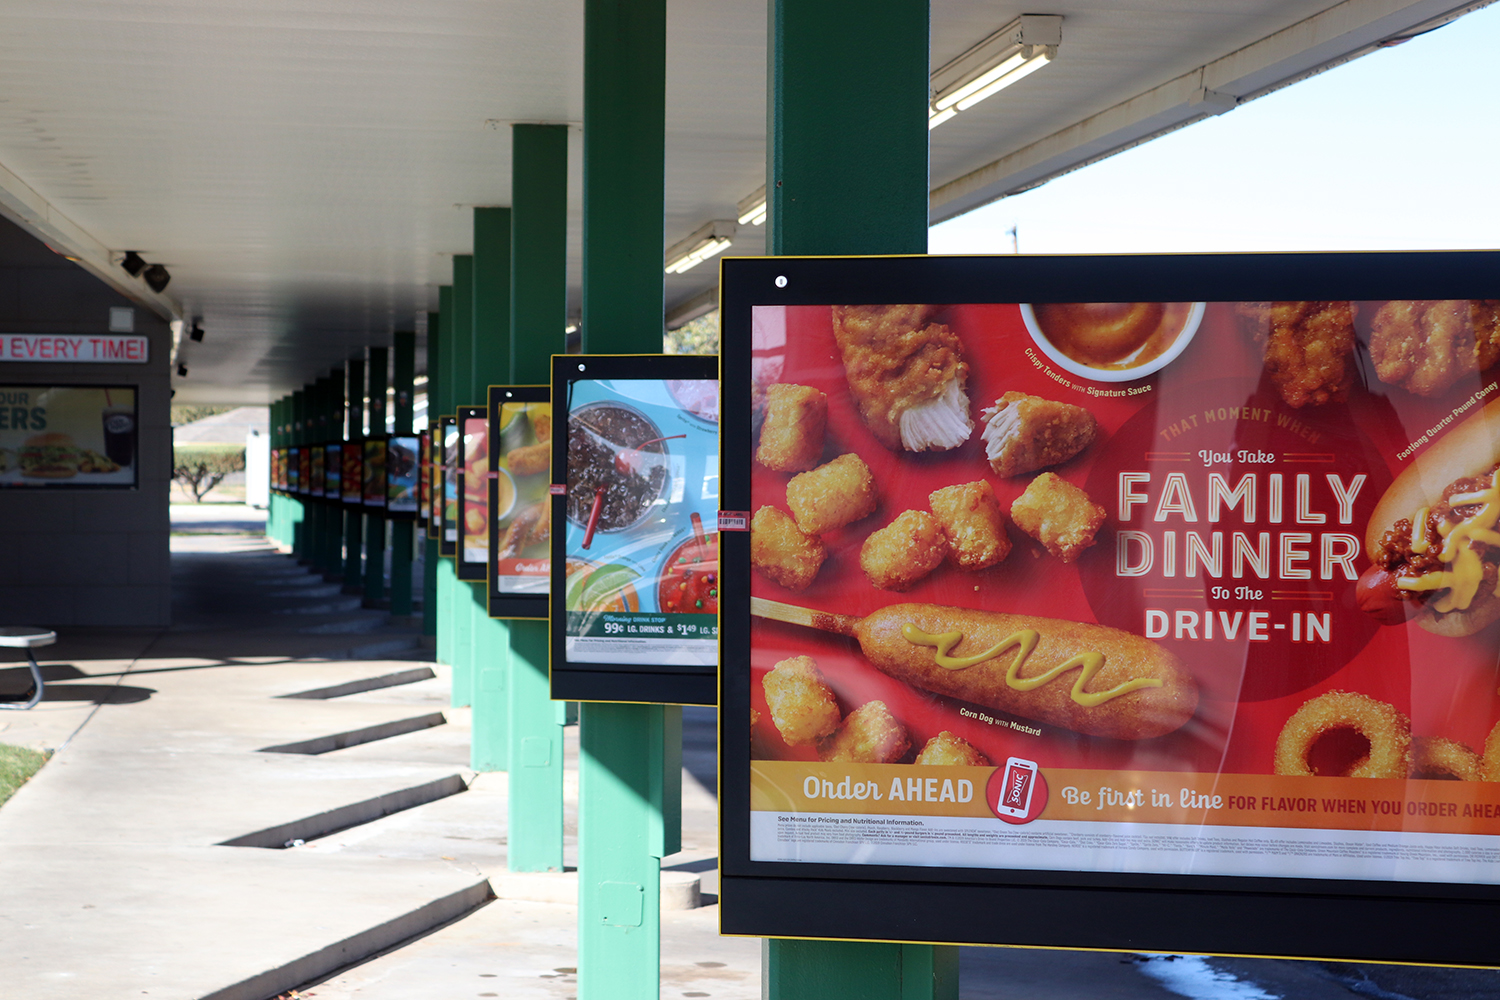 The Sonic, located on Bell, is among one of the popular lunch time food establishments for Randall students.